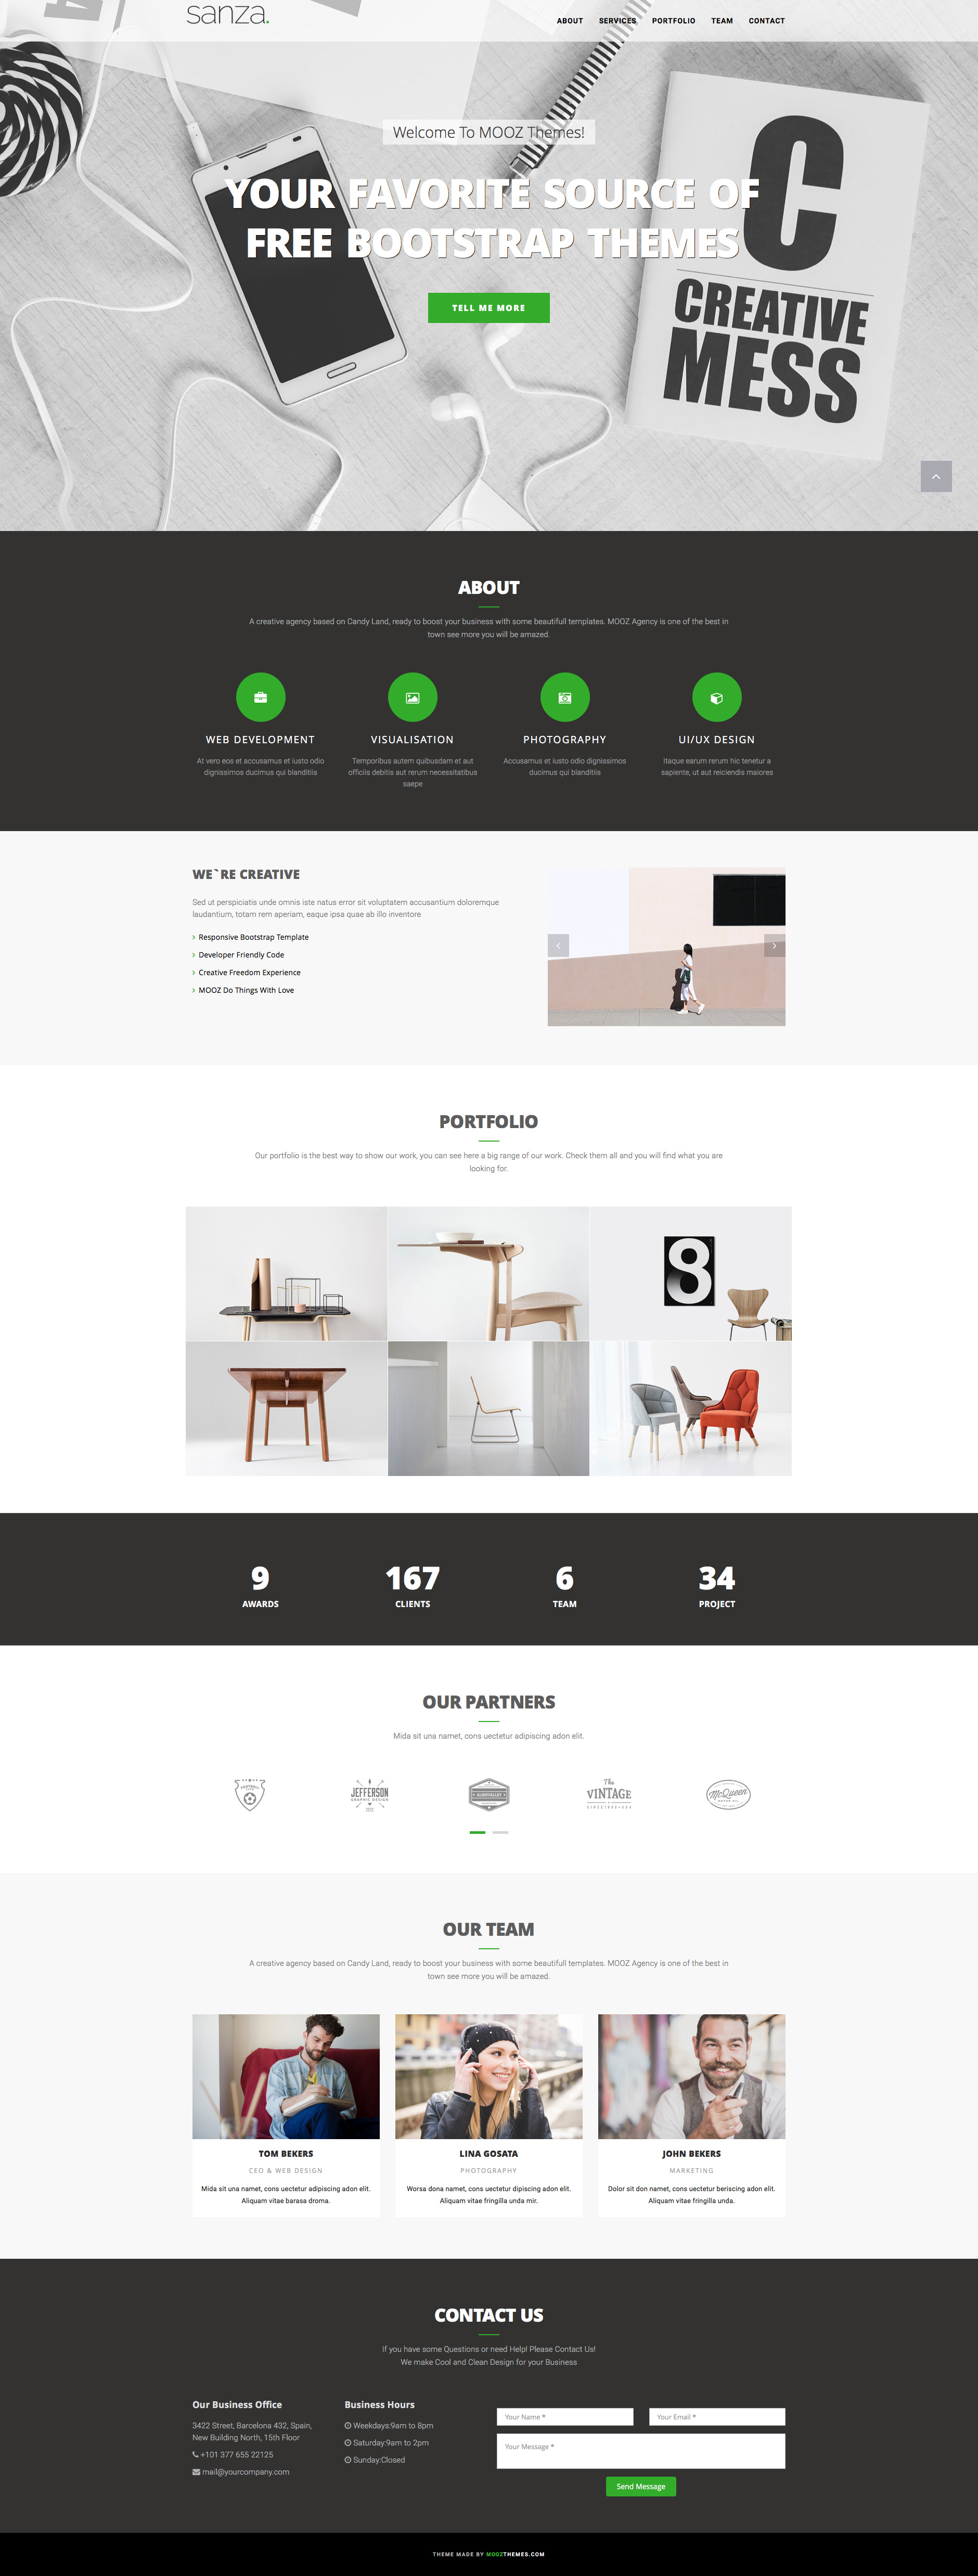 Sanza is a clean and elegant, free HTML5 one page Bootstrap HTML template for creatives, and agencies. Sanza template features fully responsive design, Bootstrap framework, FontAwesome icons and hundreds of google fonts, clean HTML markup, portfolio grid and many more.